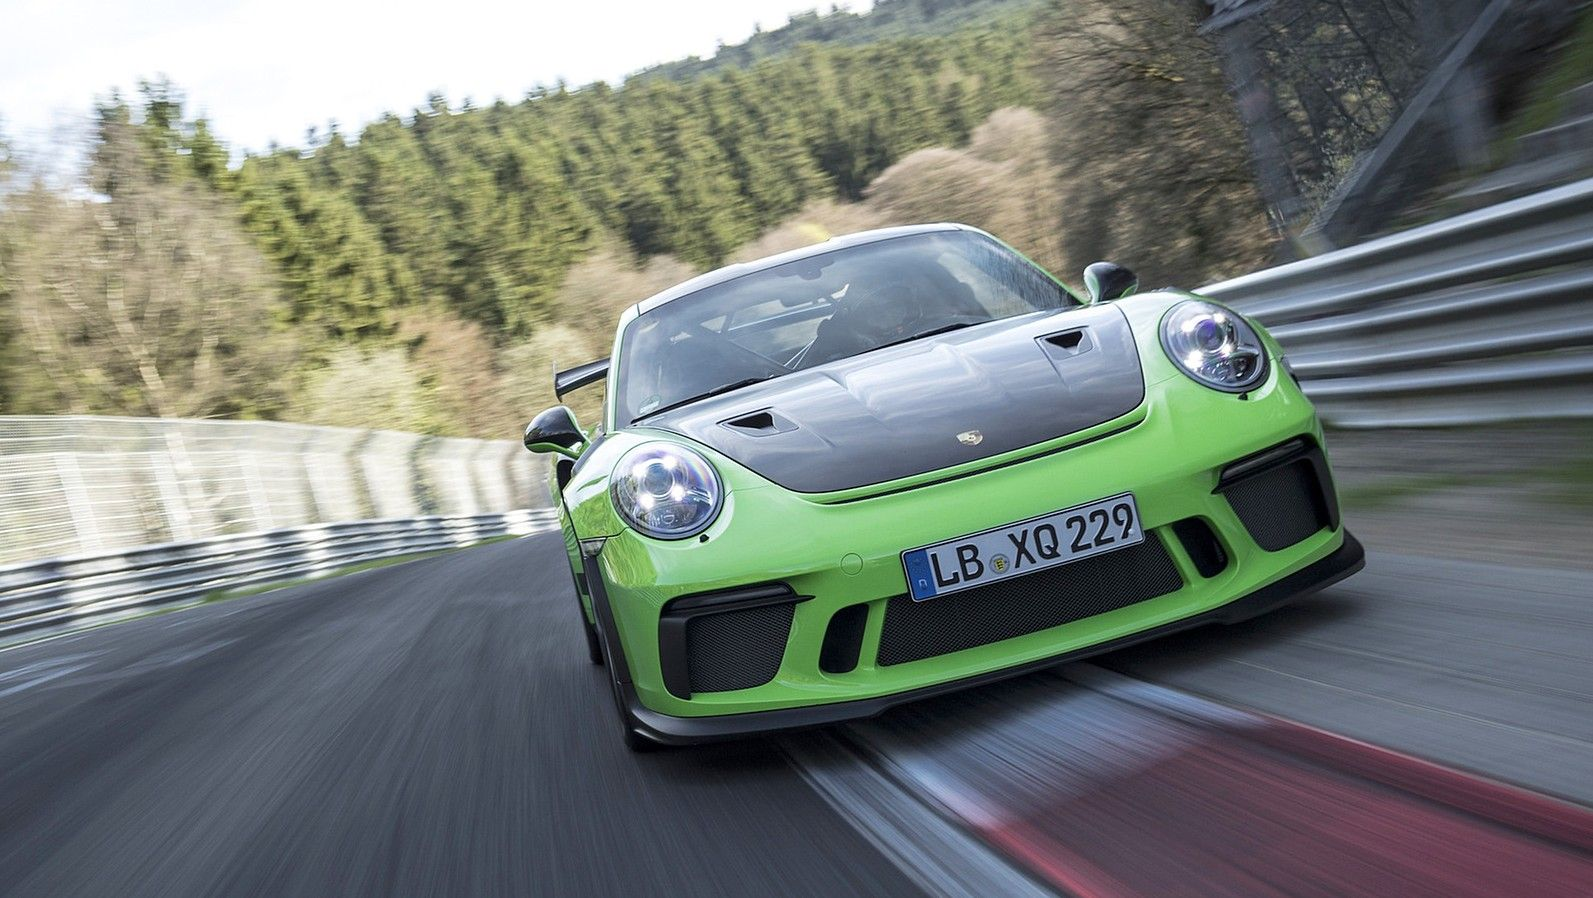 2019 Porsche 911 GT3 RS front three quarters lizard green